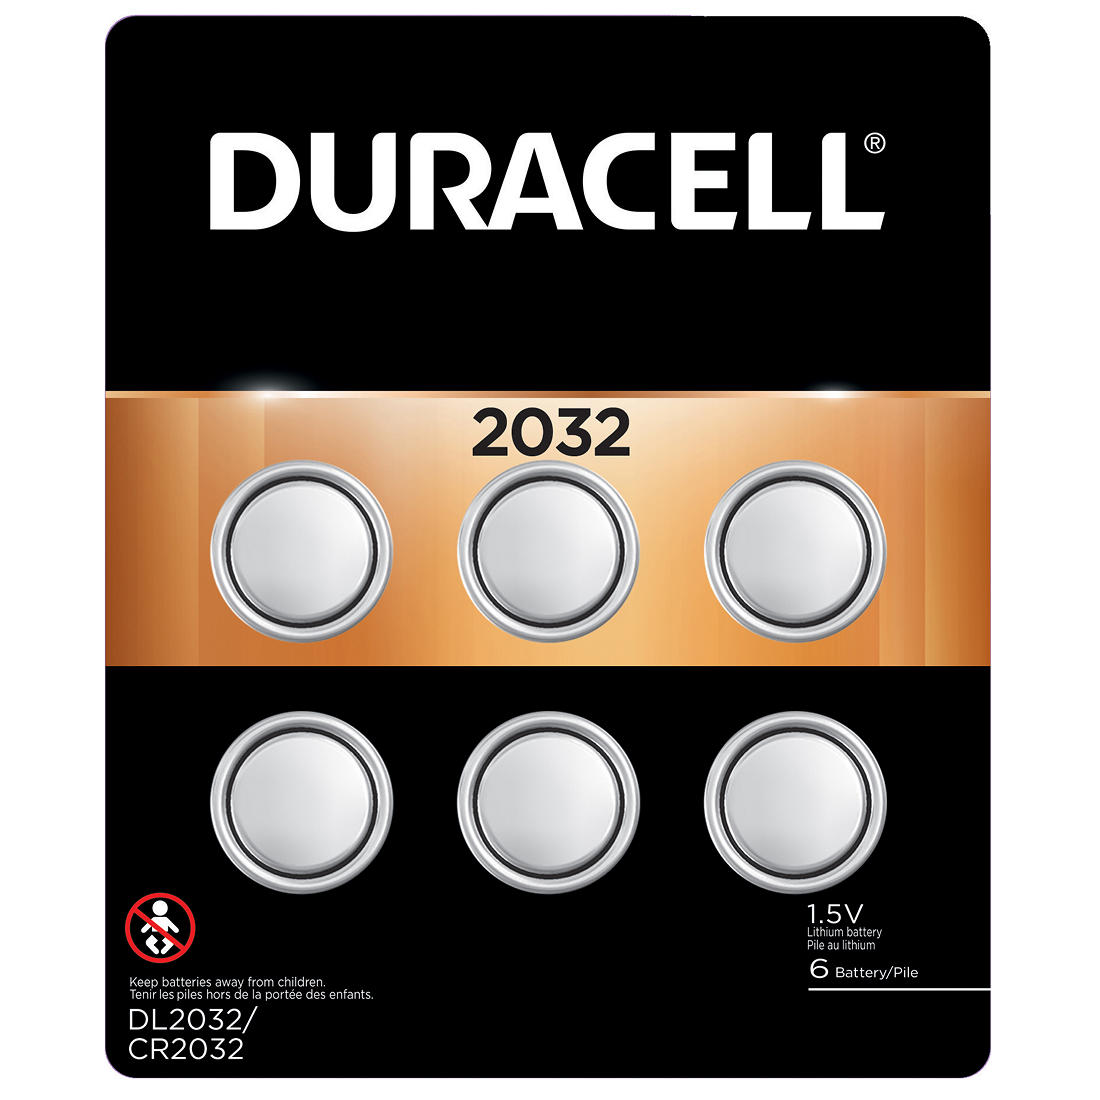 image regarding Duracell Battery Coupons Printable identified as Duracell D Mobile 2032 Check Batteries, 6 ct.